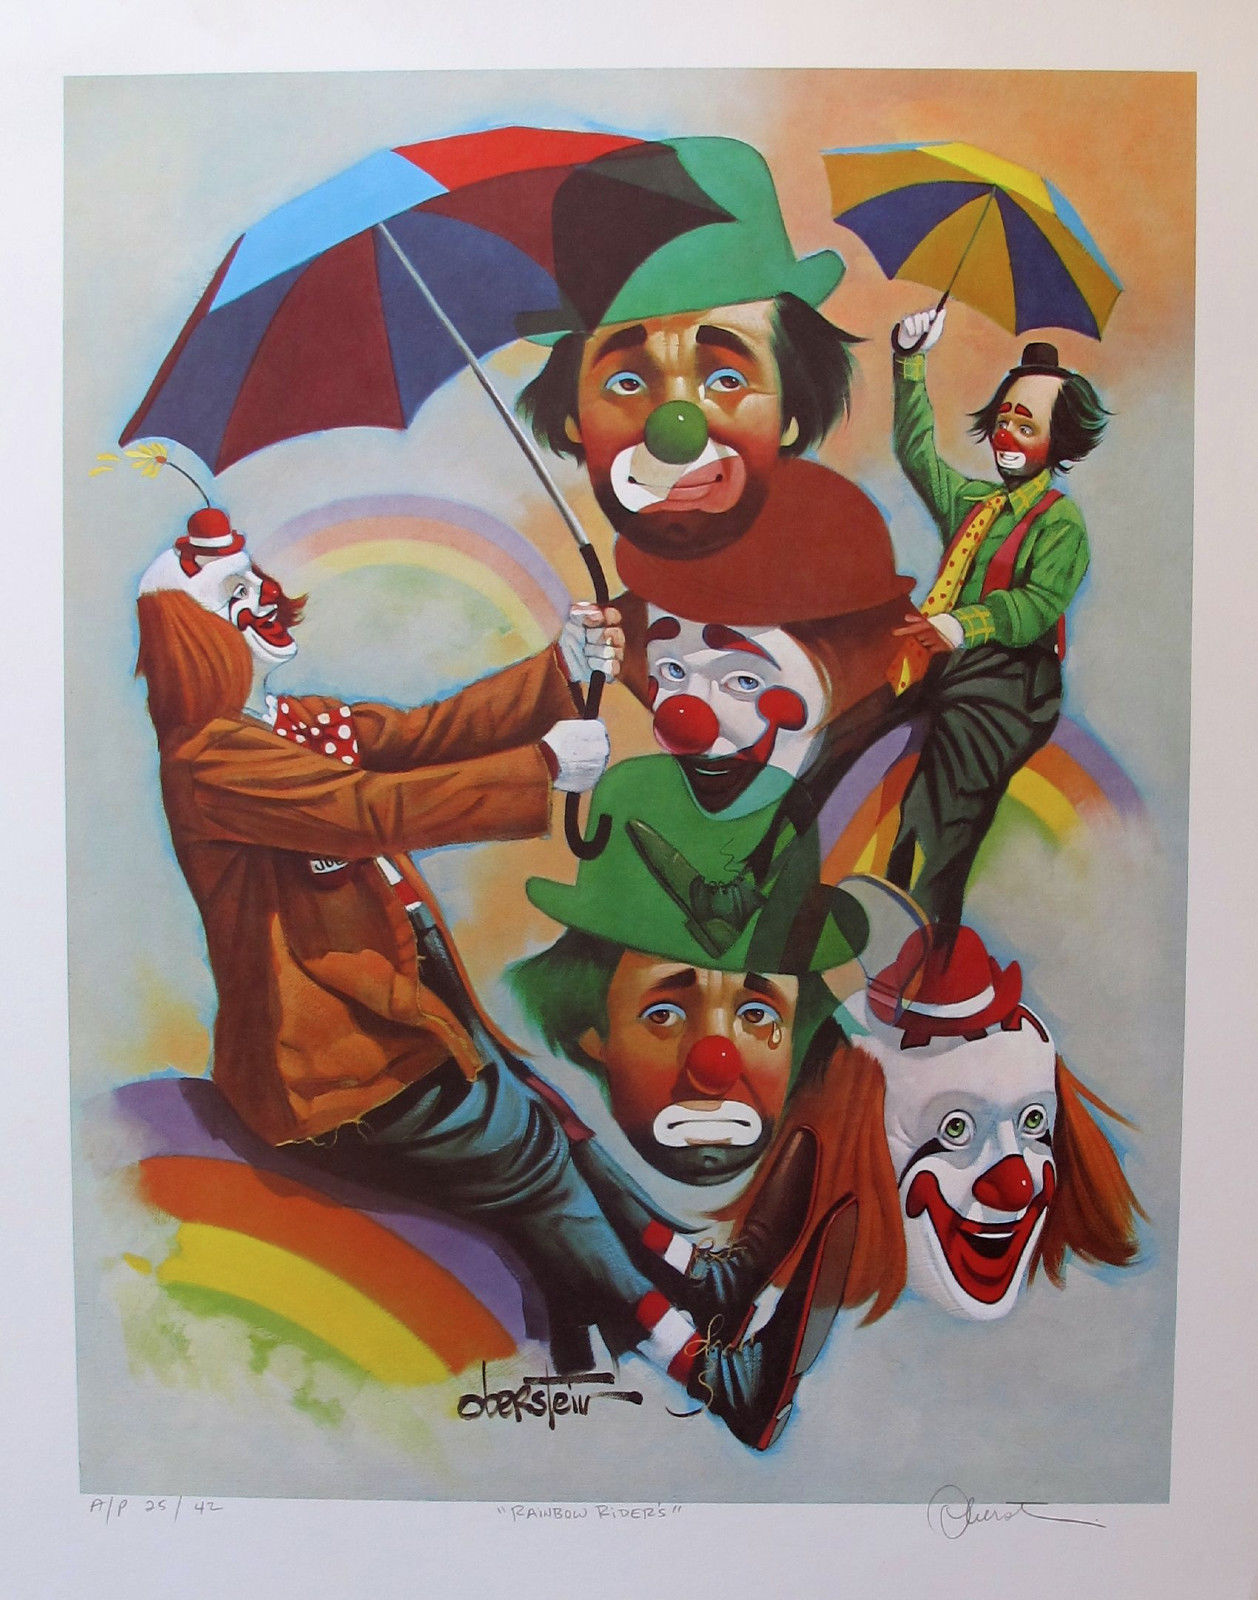 Chuck Oberstein RAINBOW RIDERS CLOWNS Limited Edition Hand Signed Lithograph